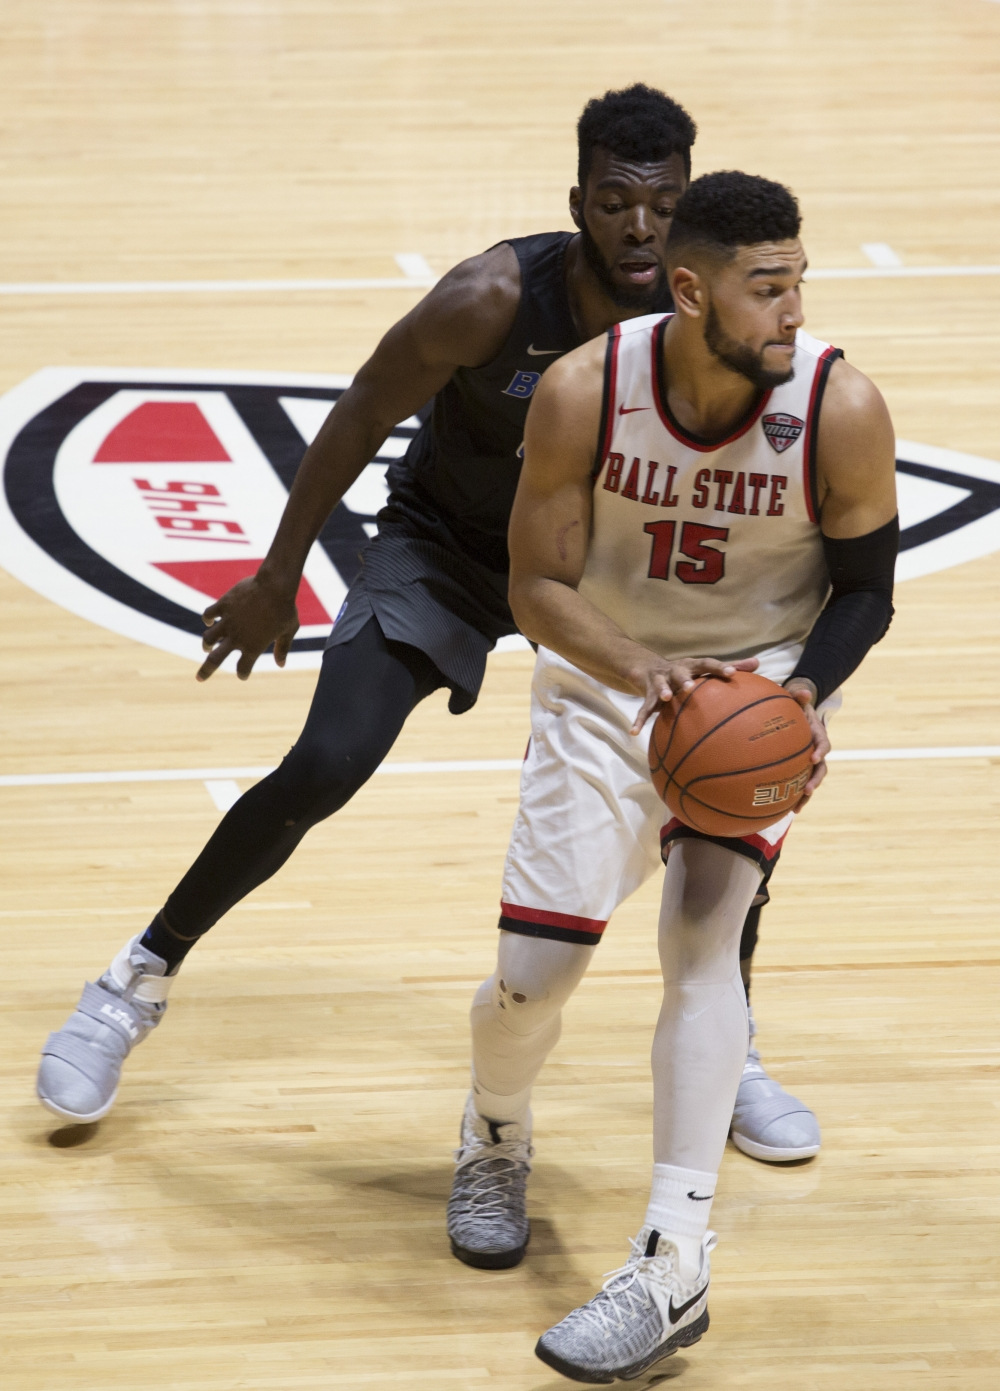 Ball State men's basketball suffers worst home loss since 2013